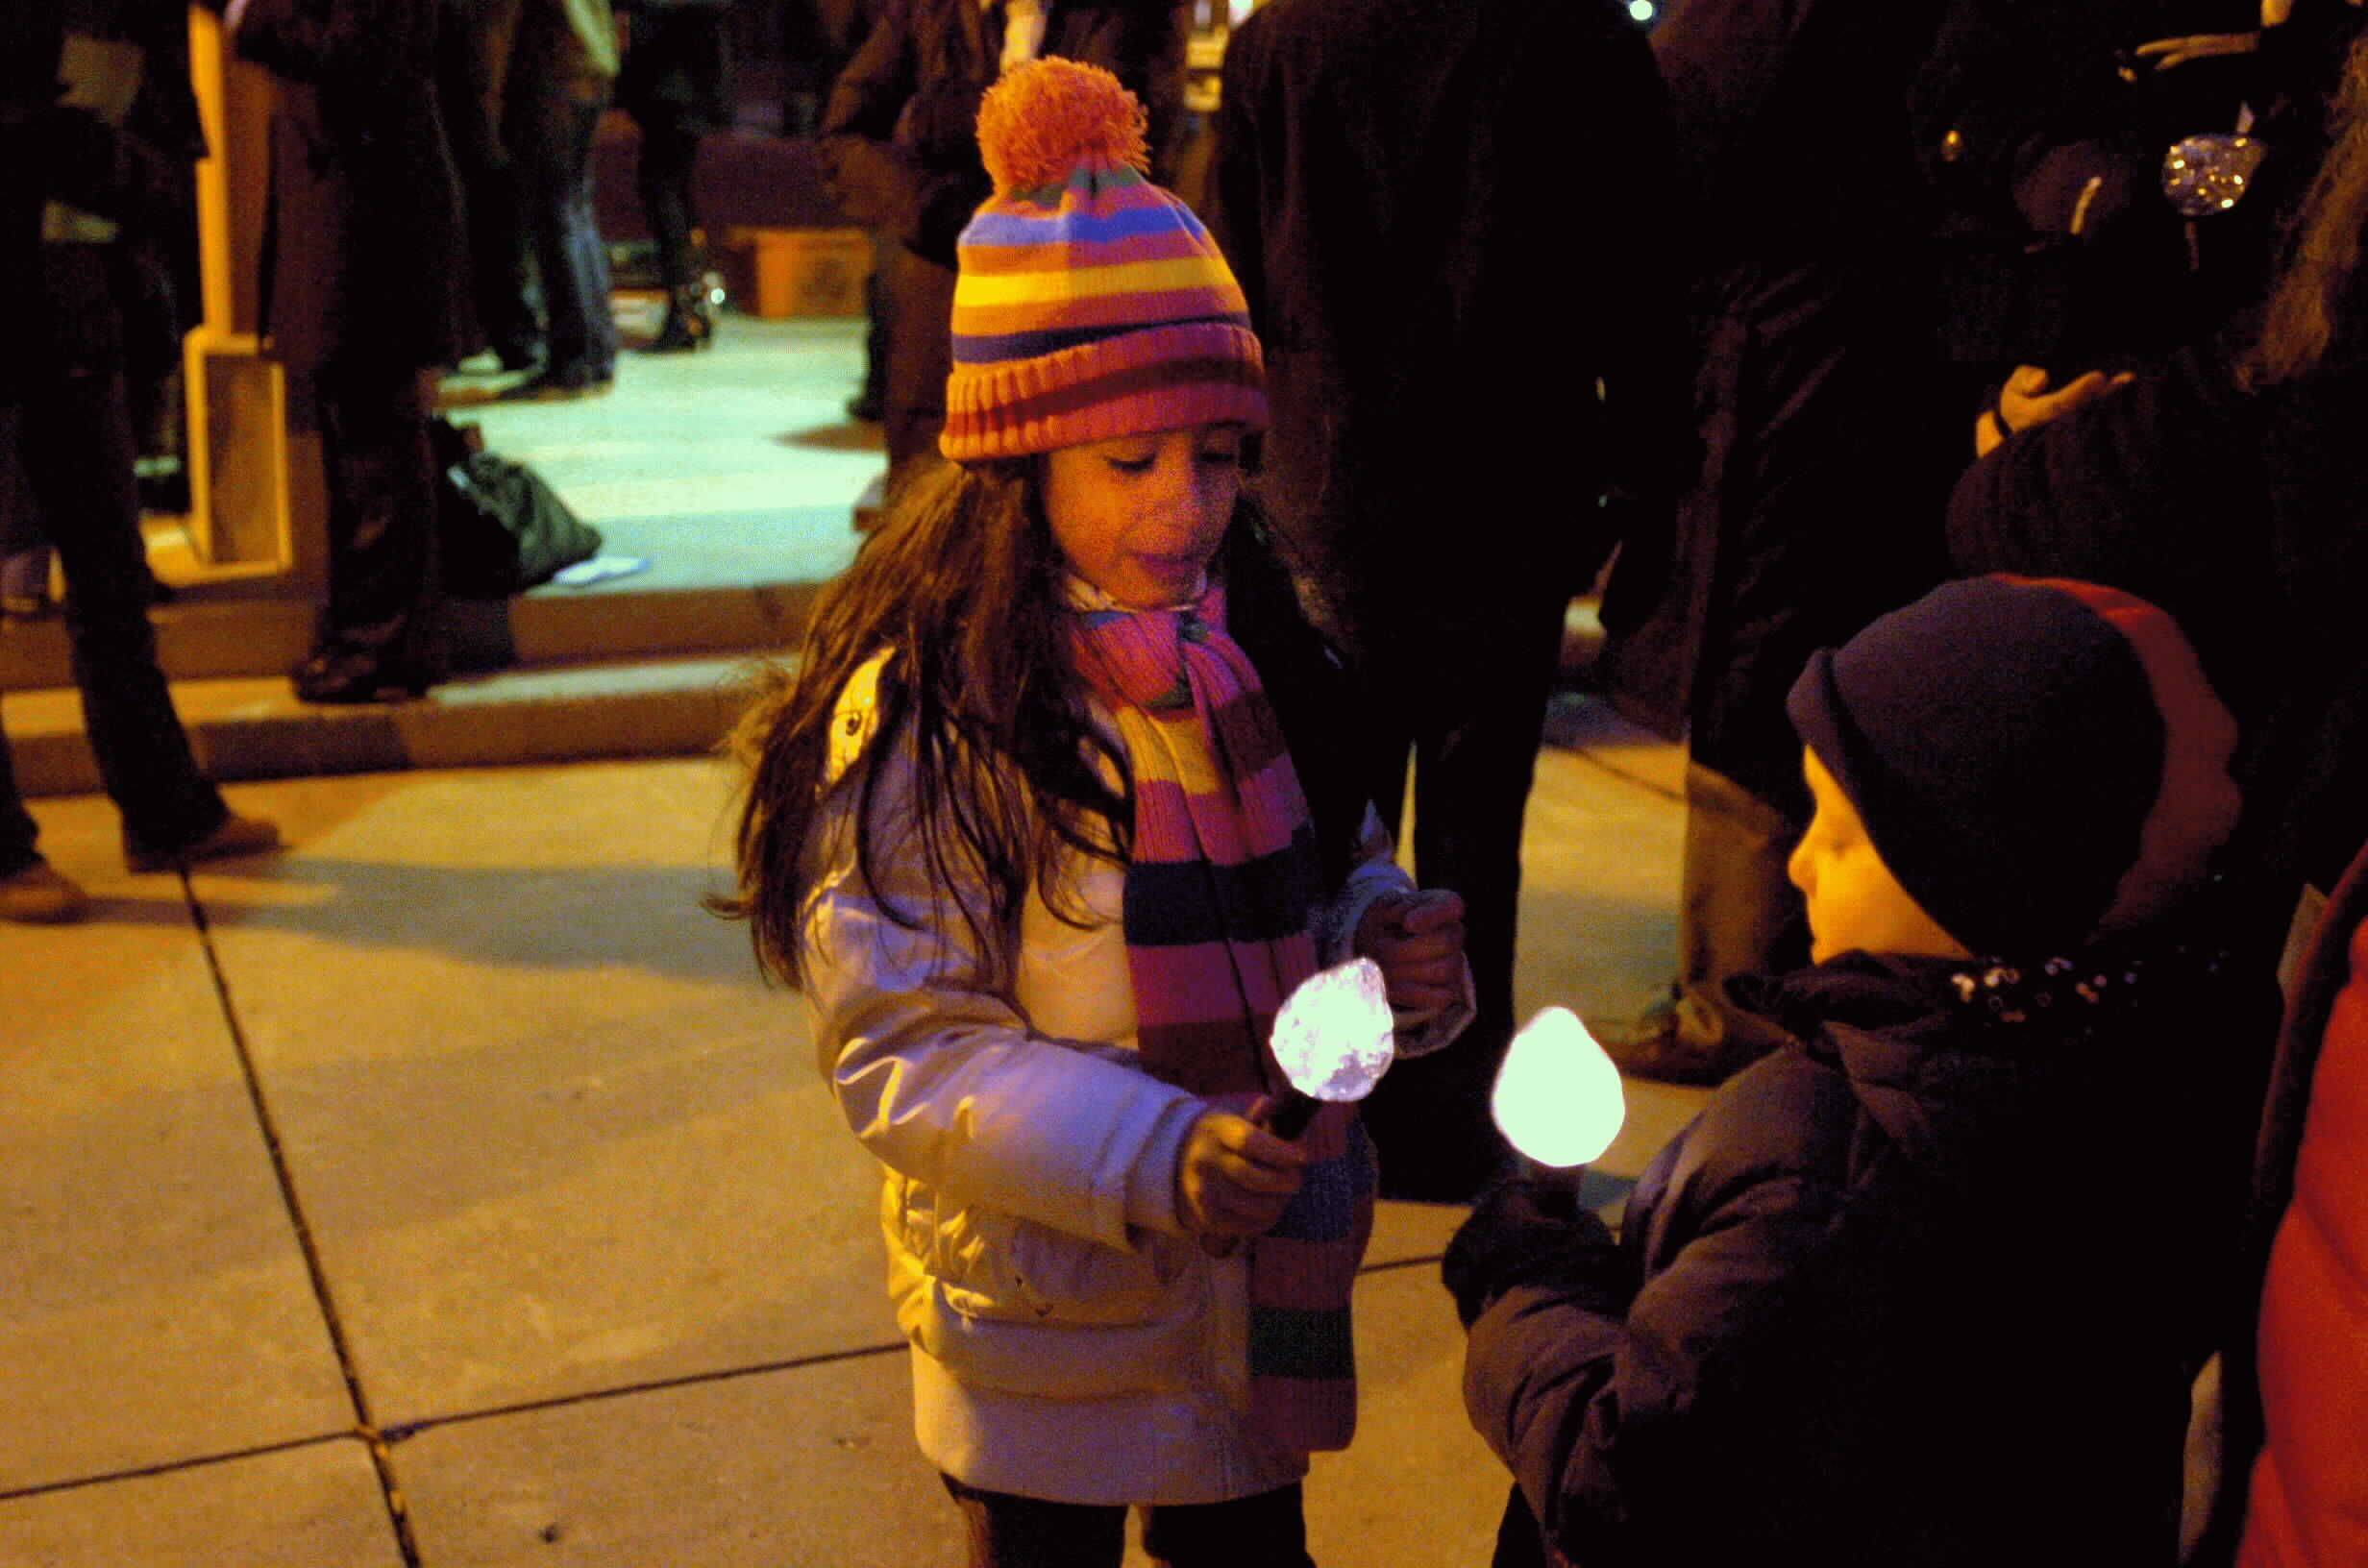 Six-year-old Giulia Ayala from St. Charles, and her friend, five-year-old Joey Jensen from St. Charles play with their flash llight torches that they received at the lighting of the holiday lights in Lincoln Park in St. Charles on Friday night.